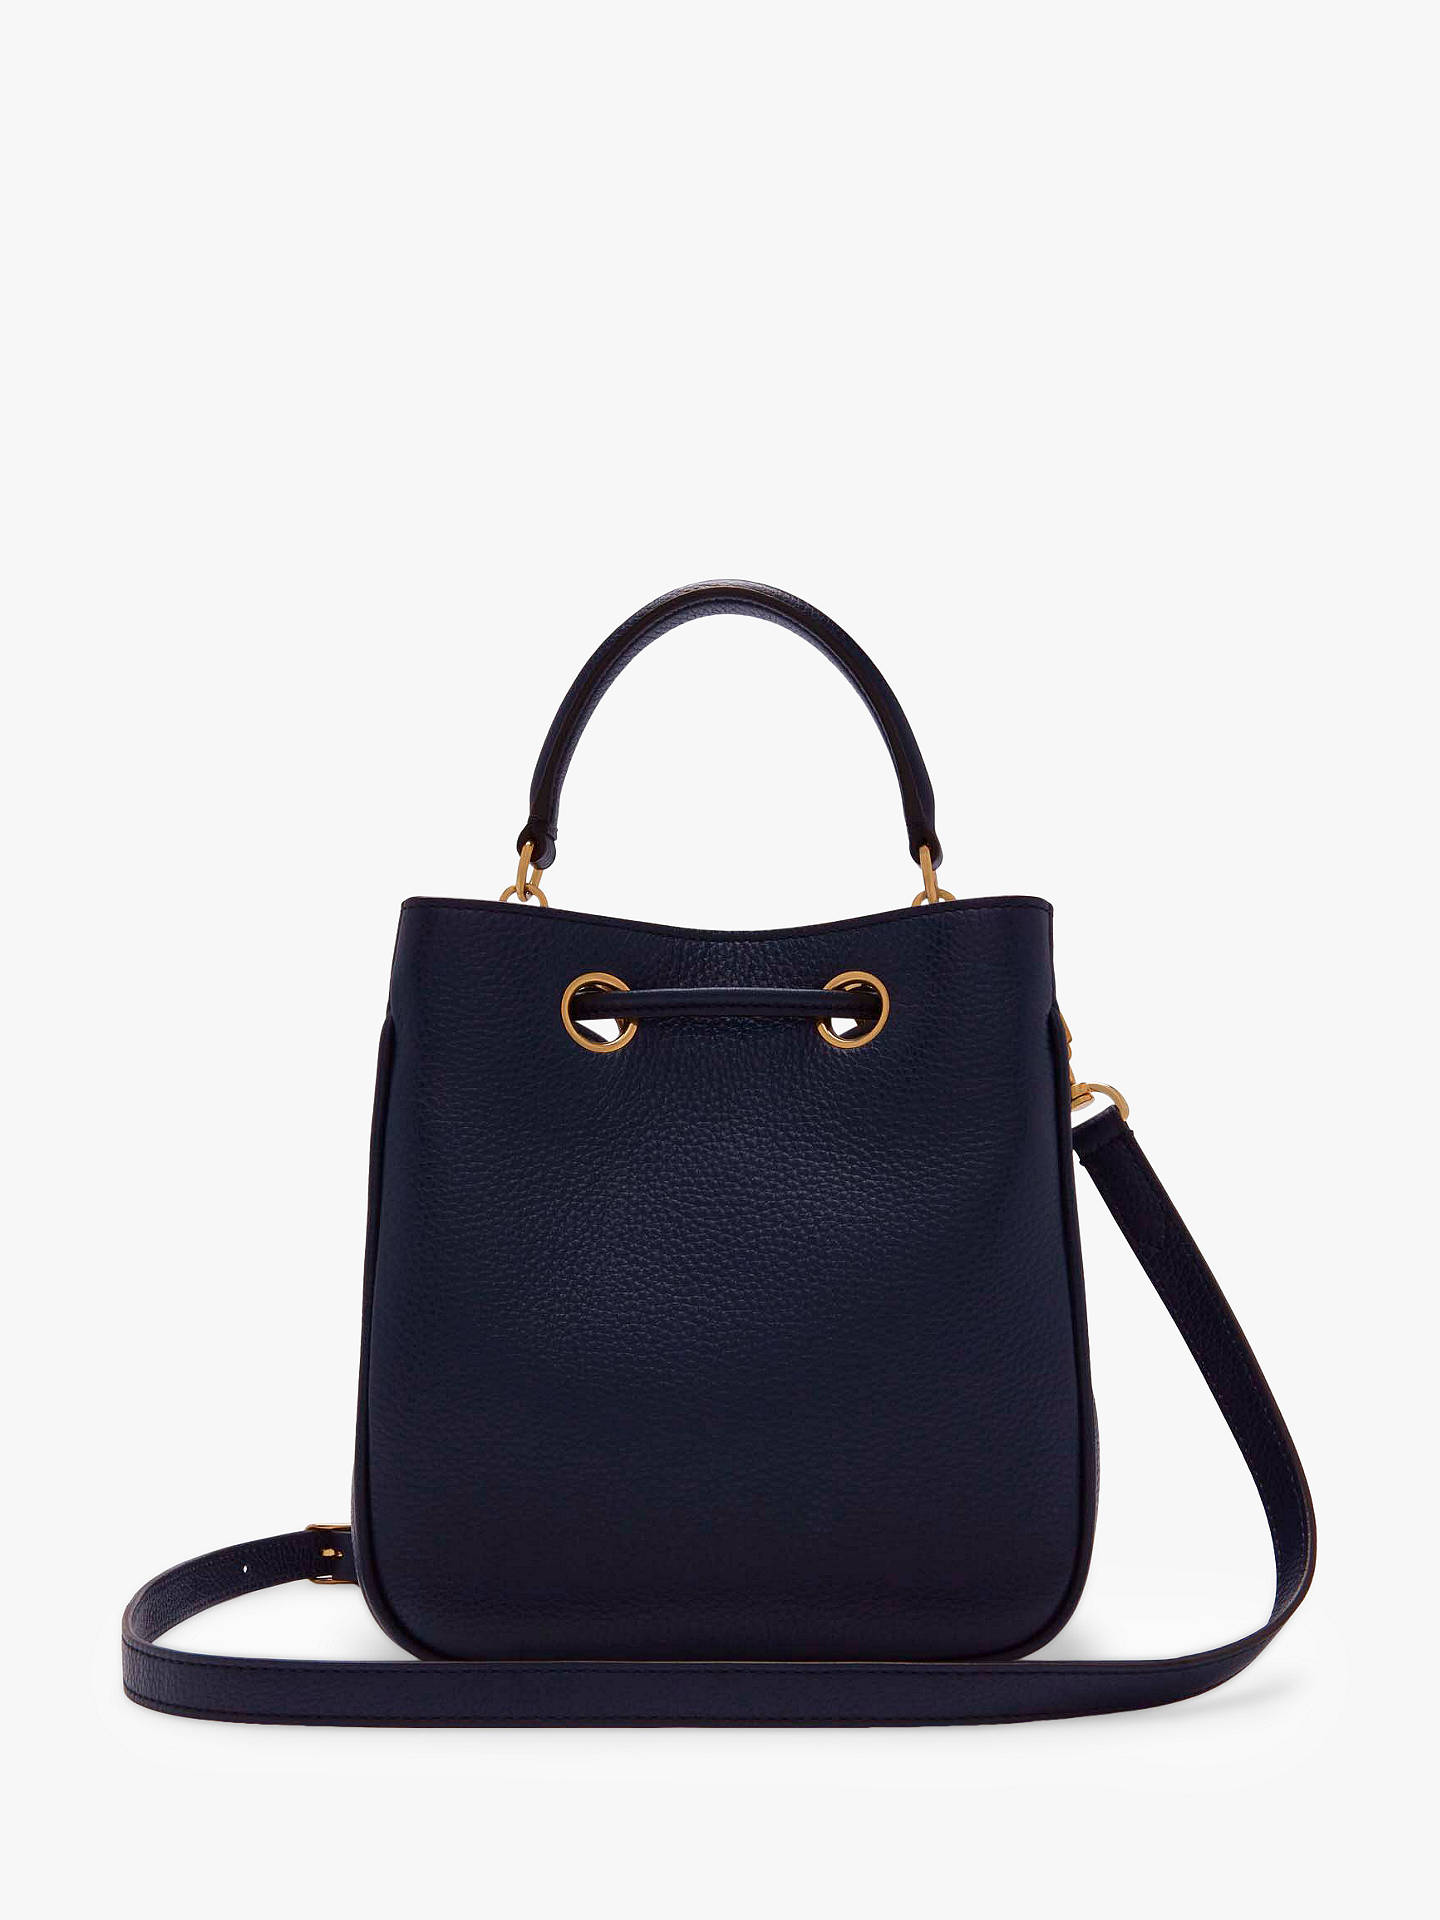 Mulberry Small Hampstead Classic Grain Leather Handbag Bright Navy Online At Johnlewis